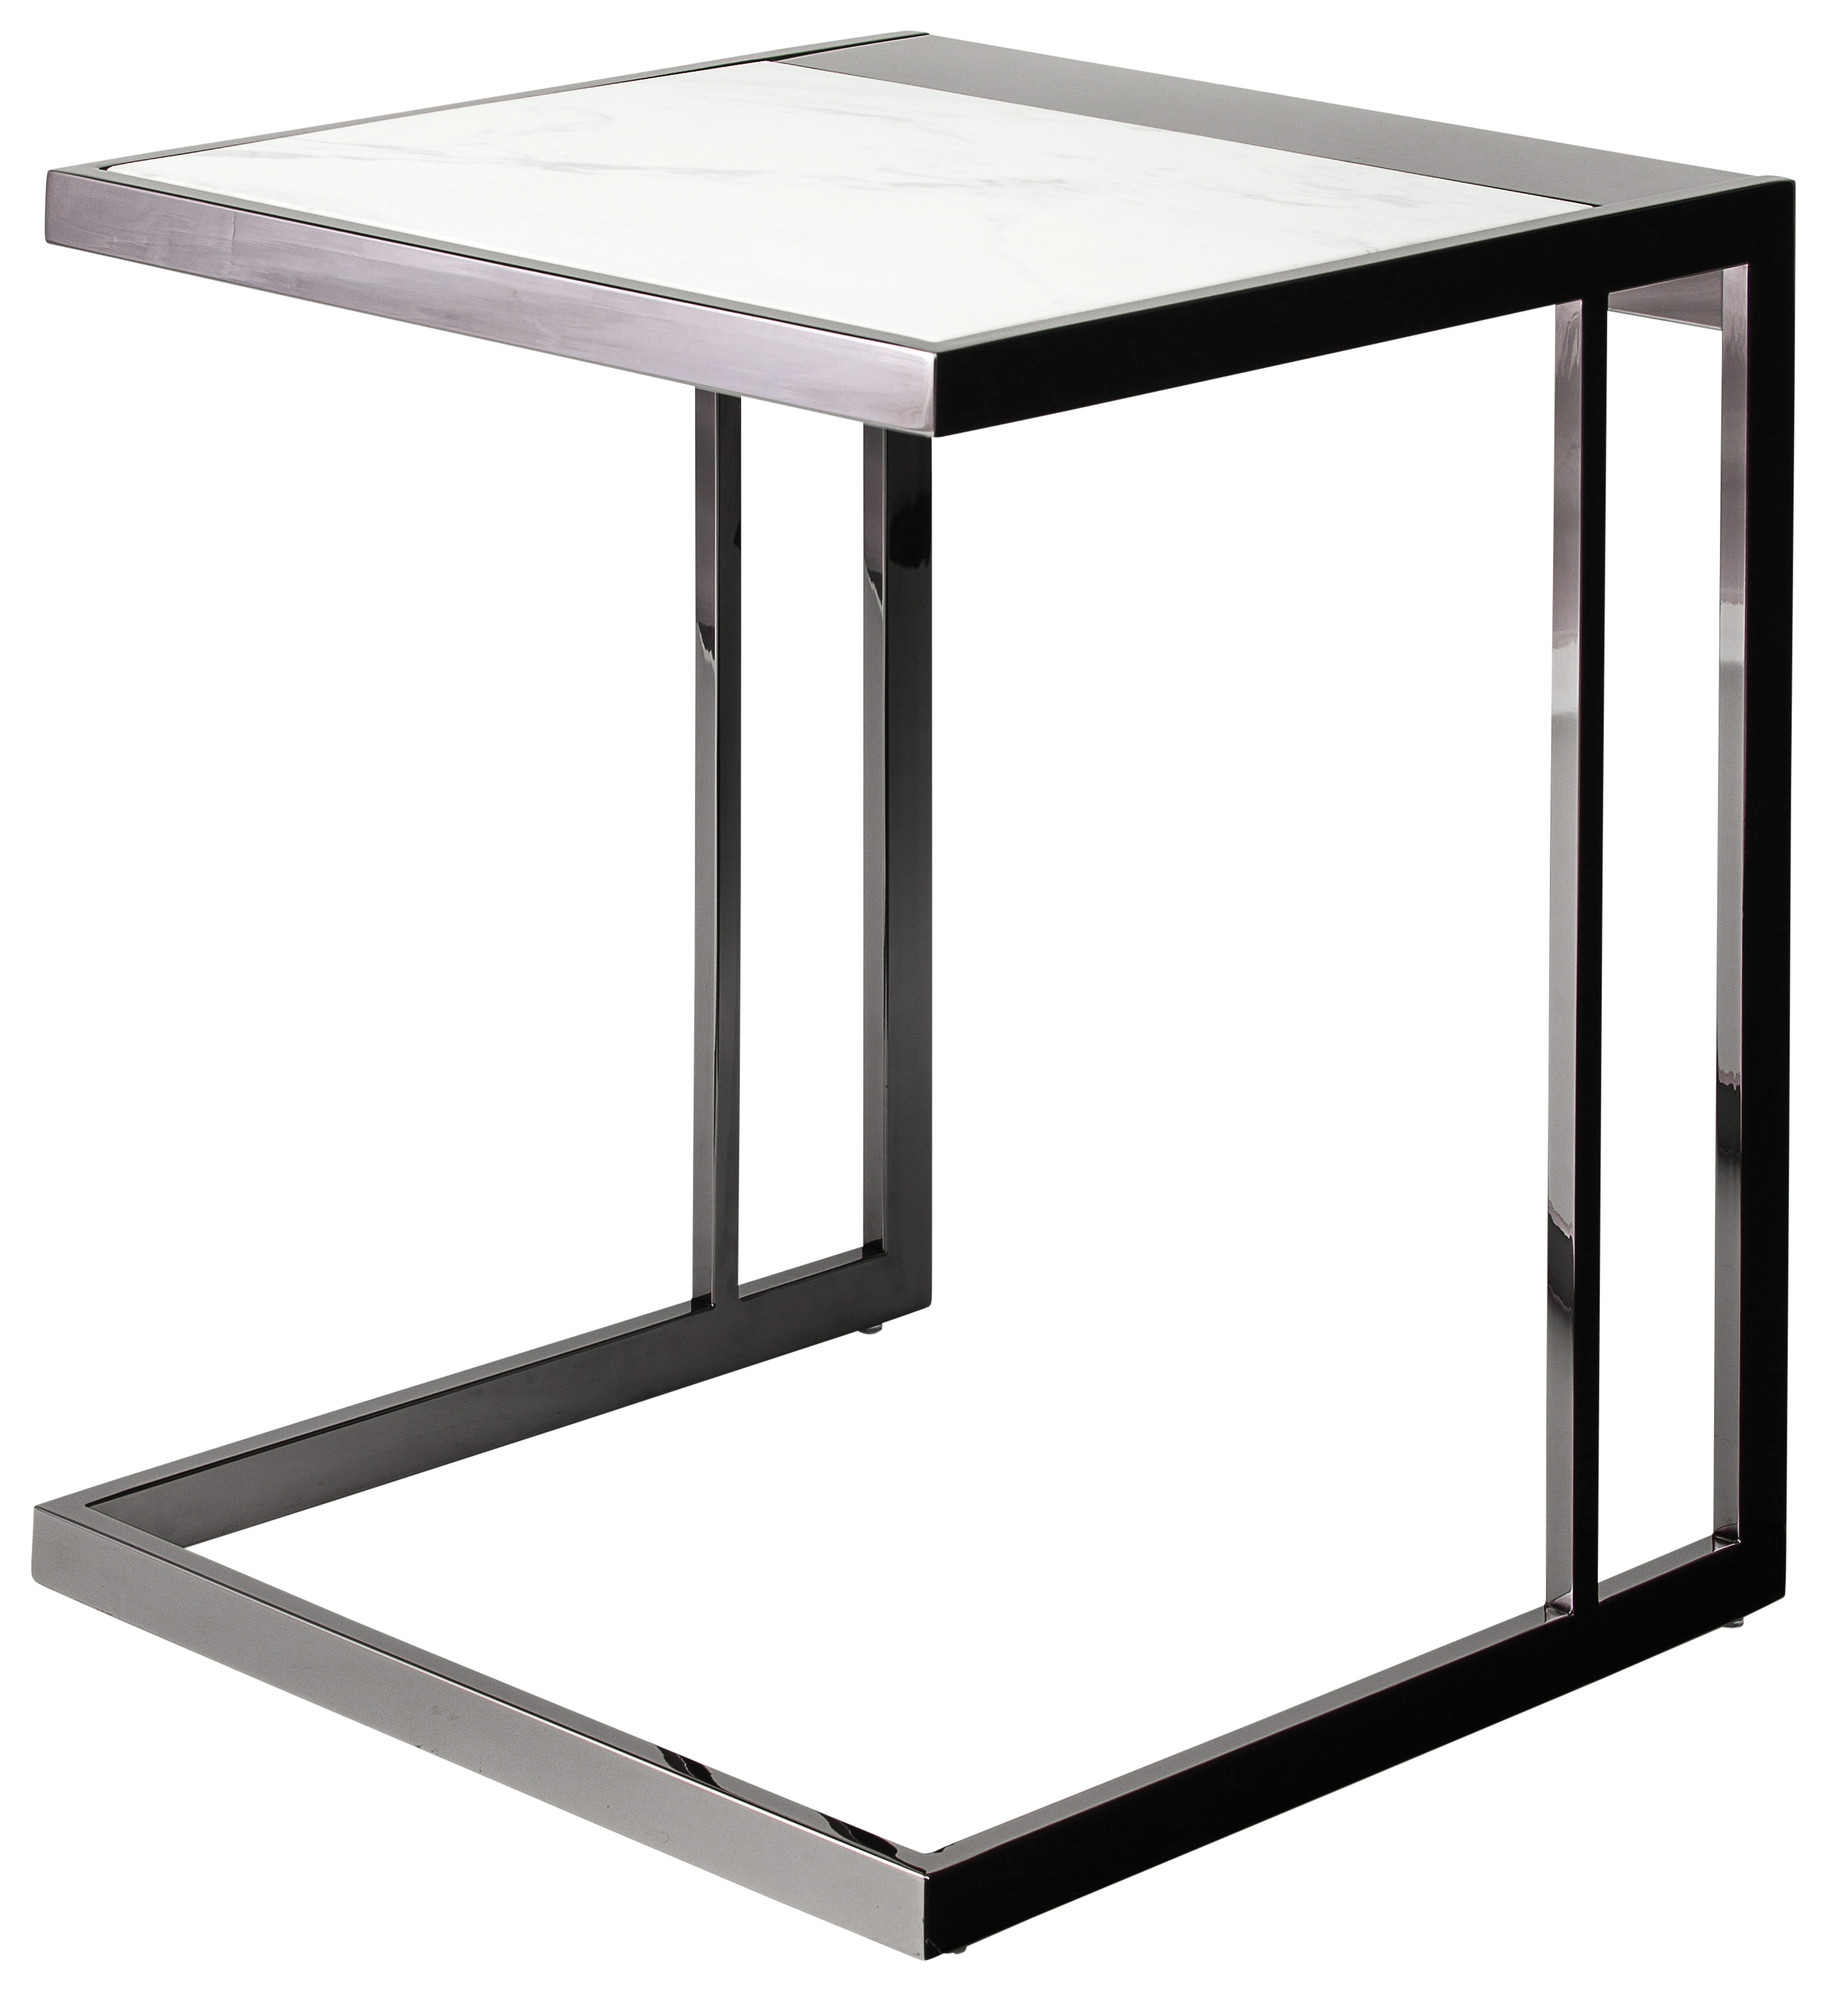 ethan-black-side-table.jpg